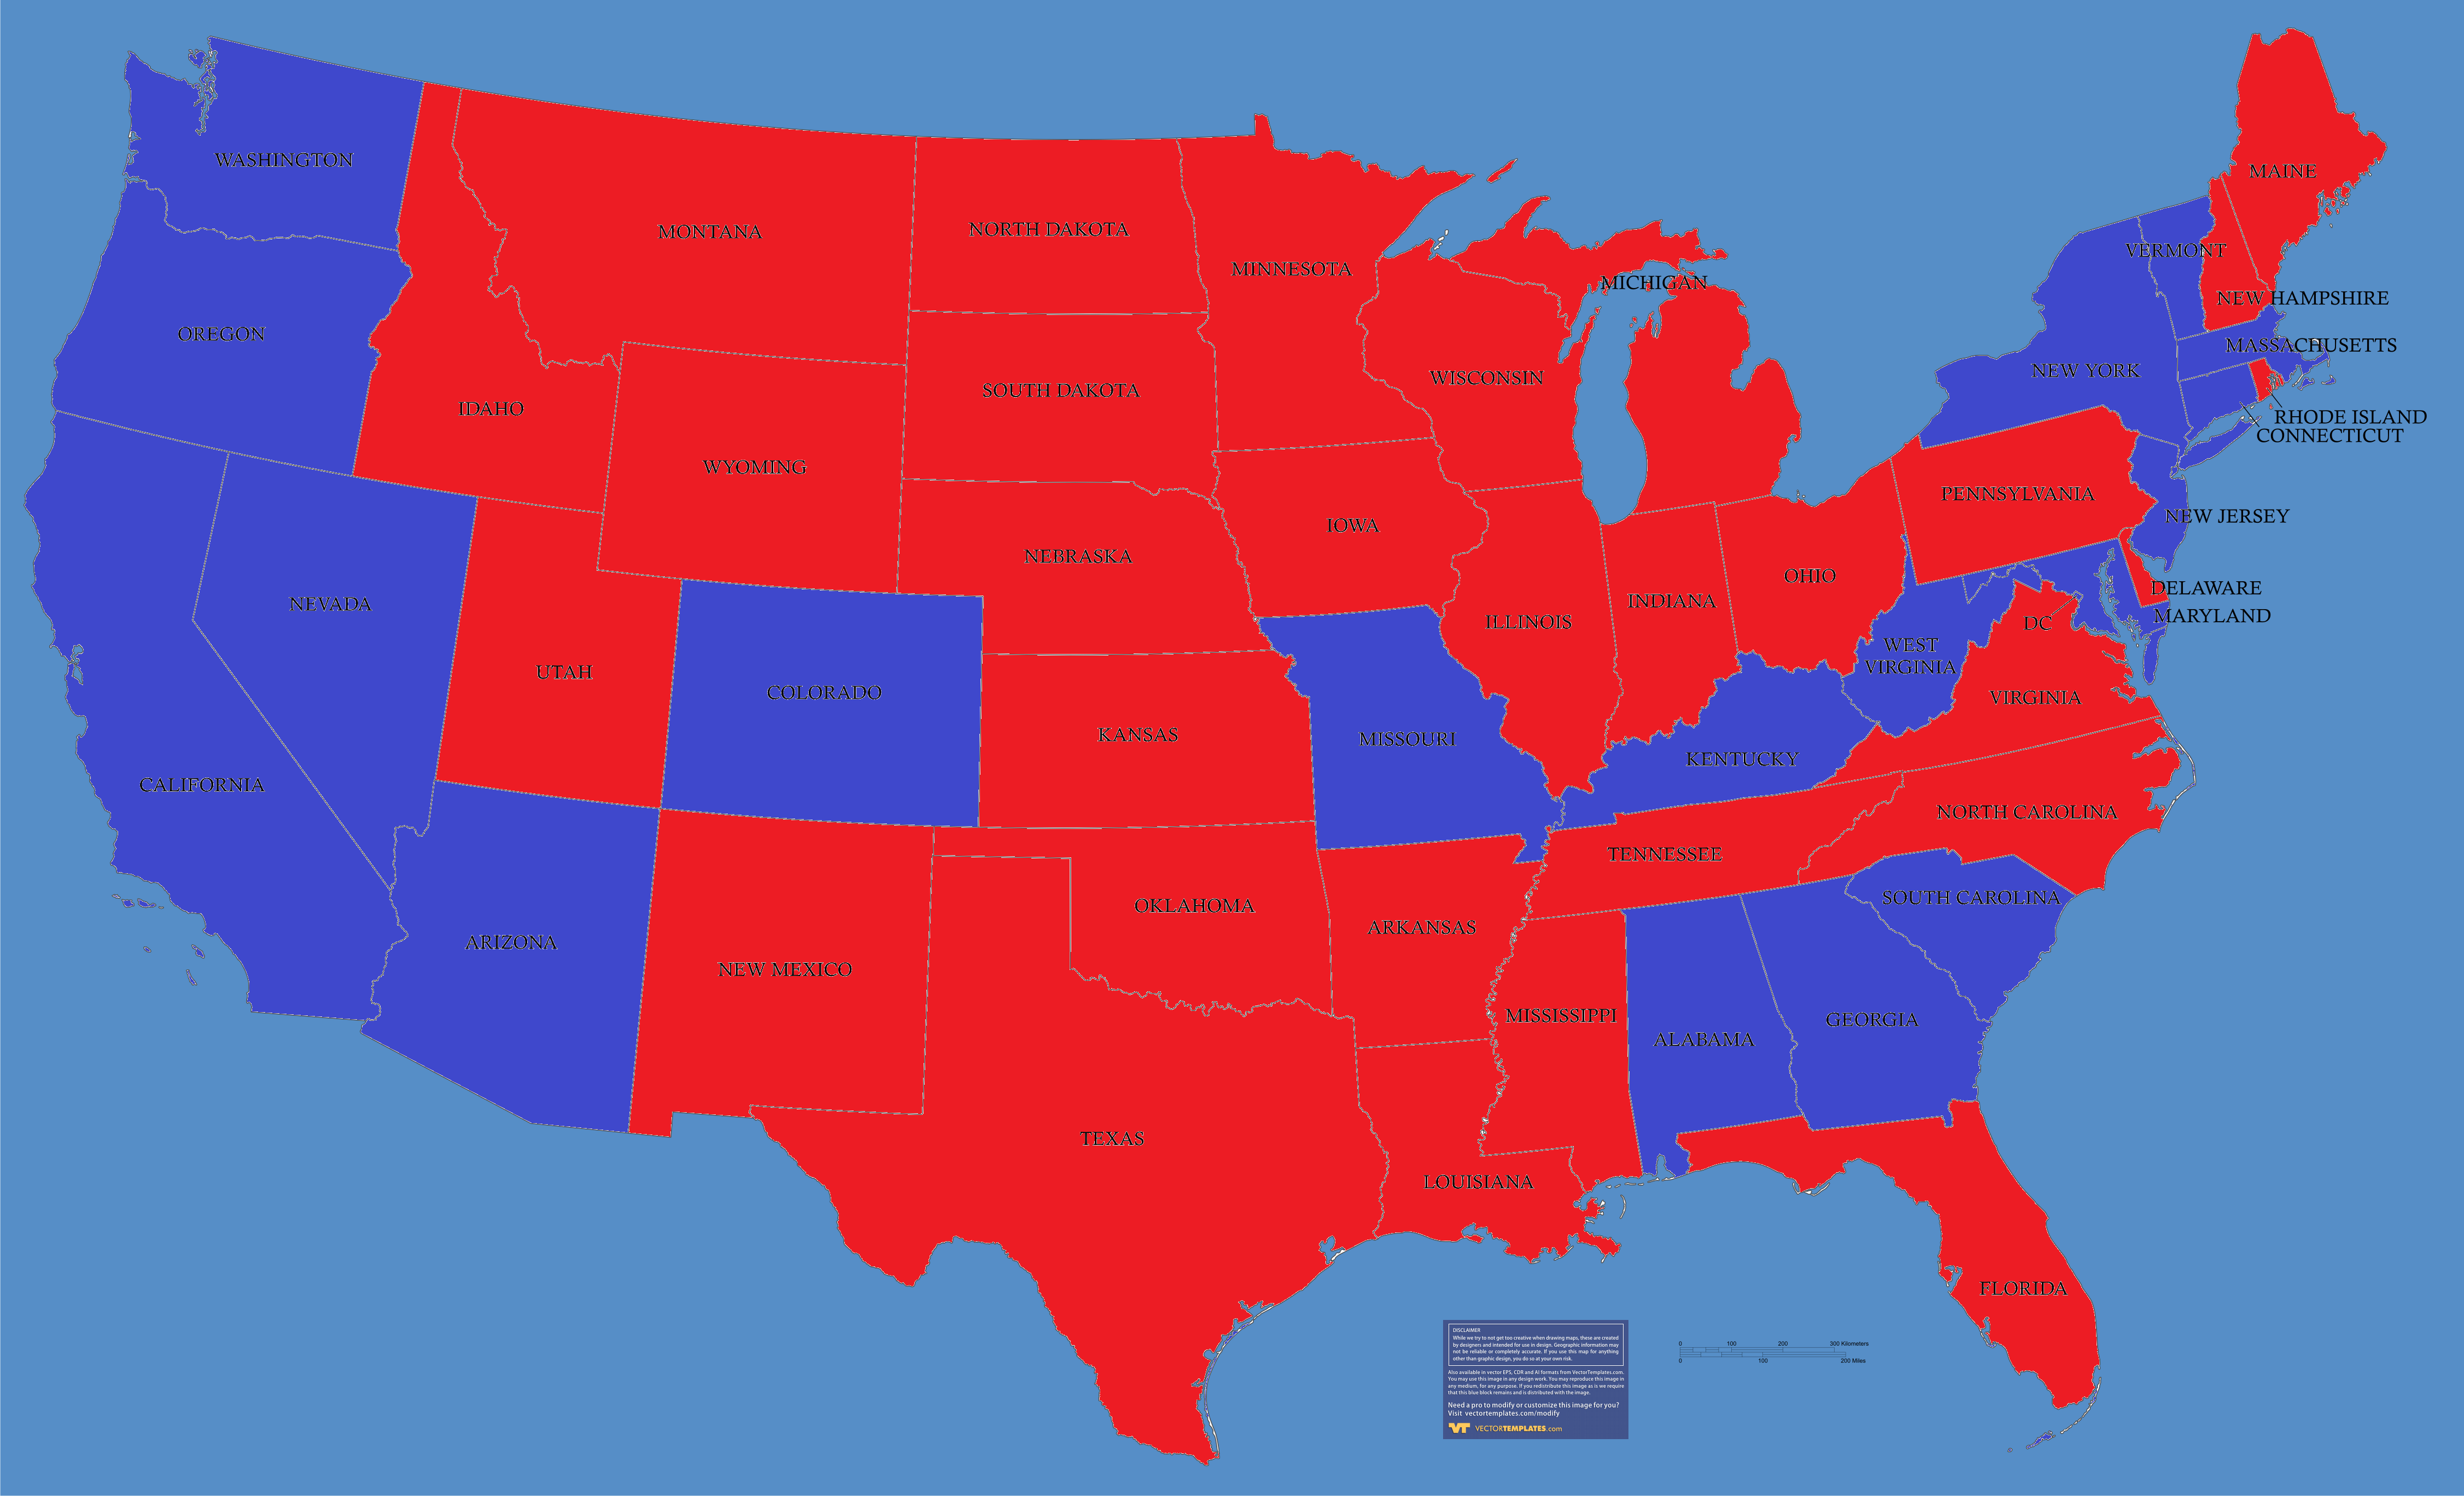 Map Of Us States Democrat Republican - Political map of us states